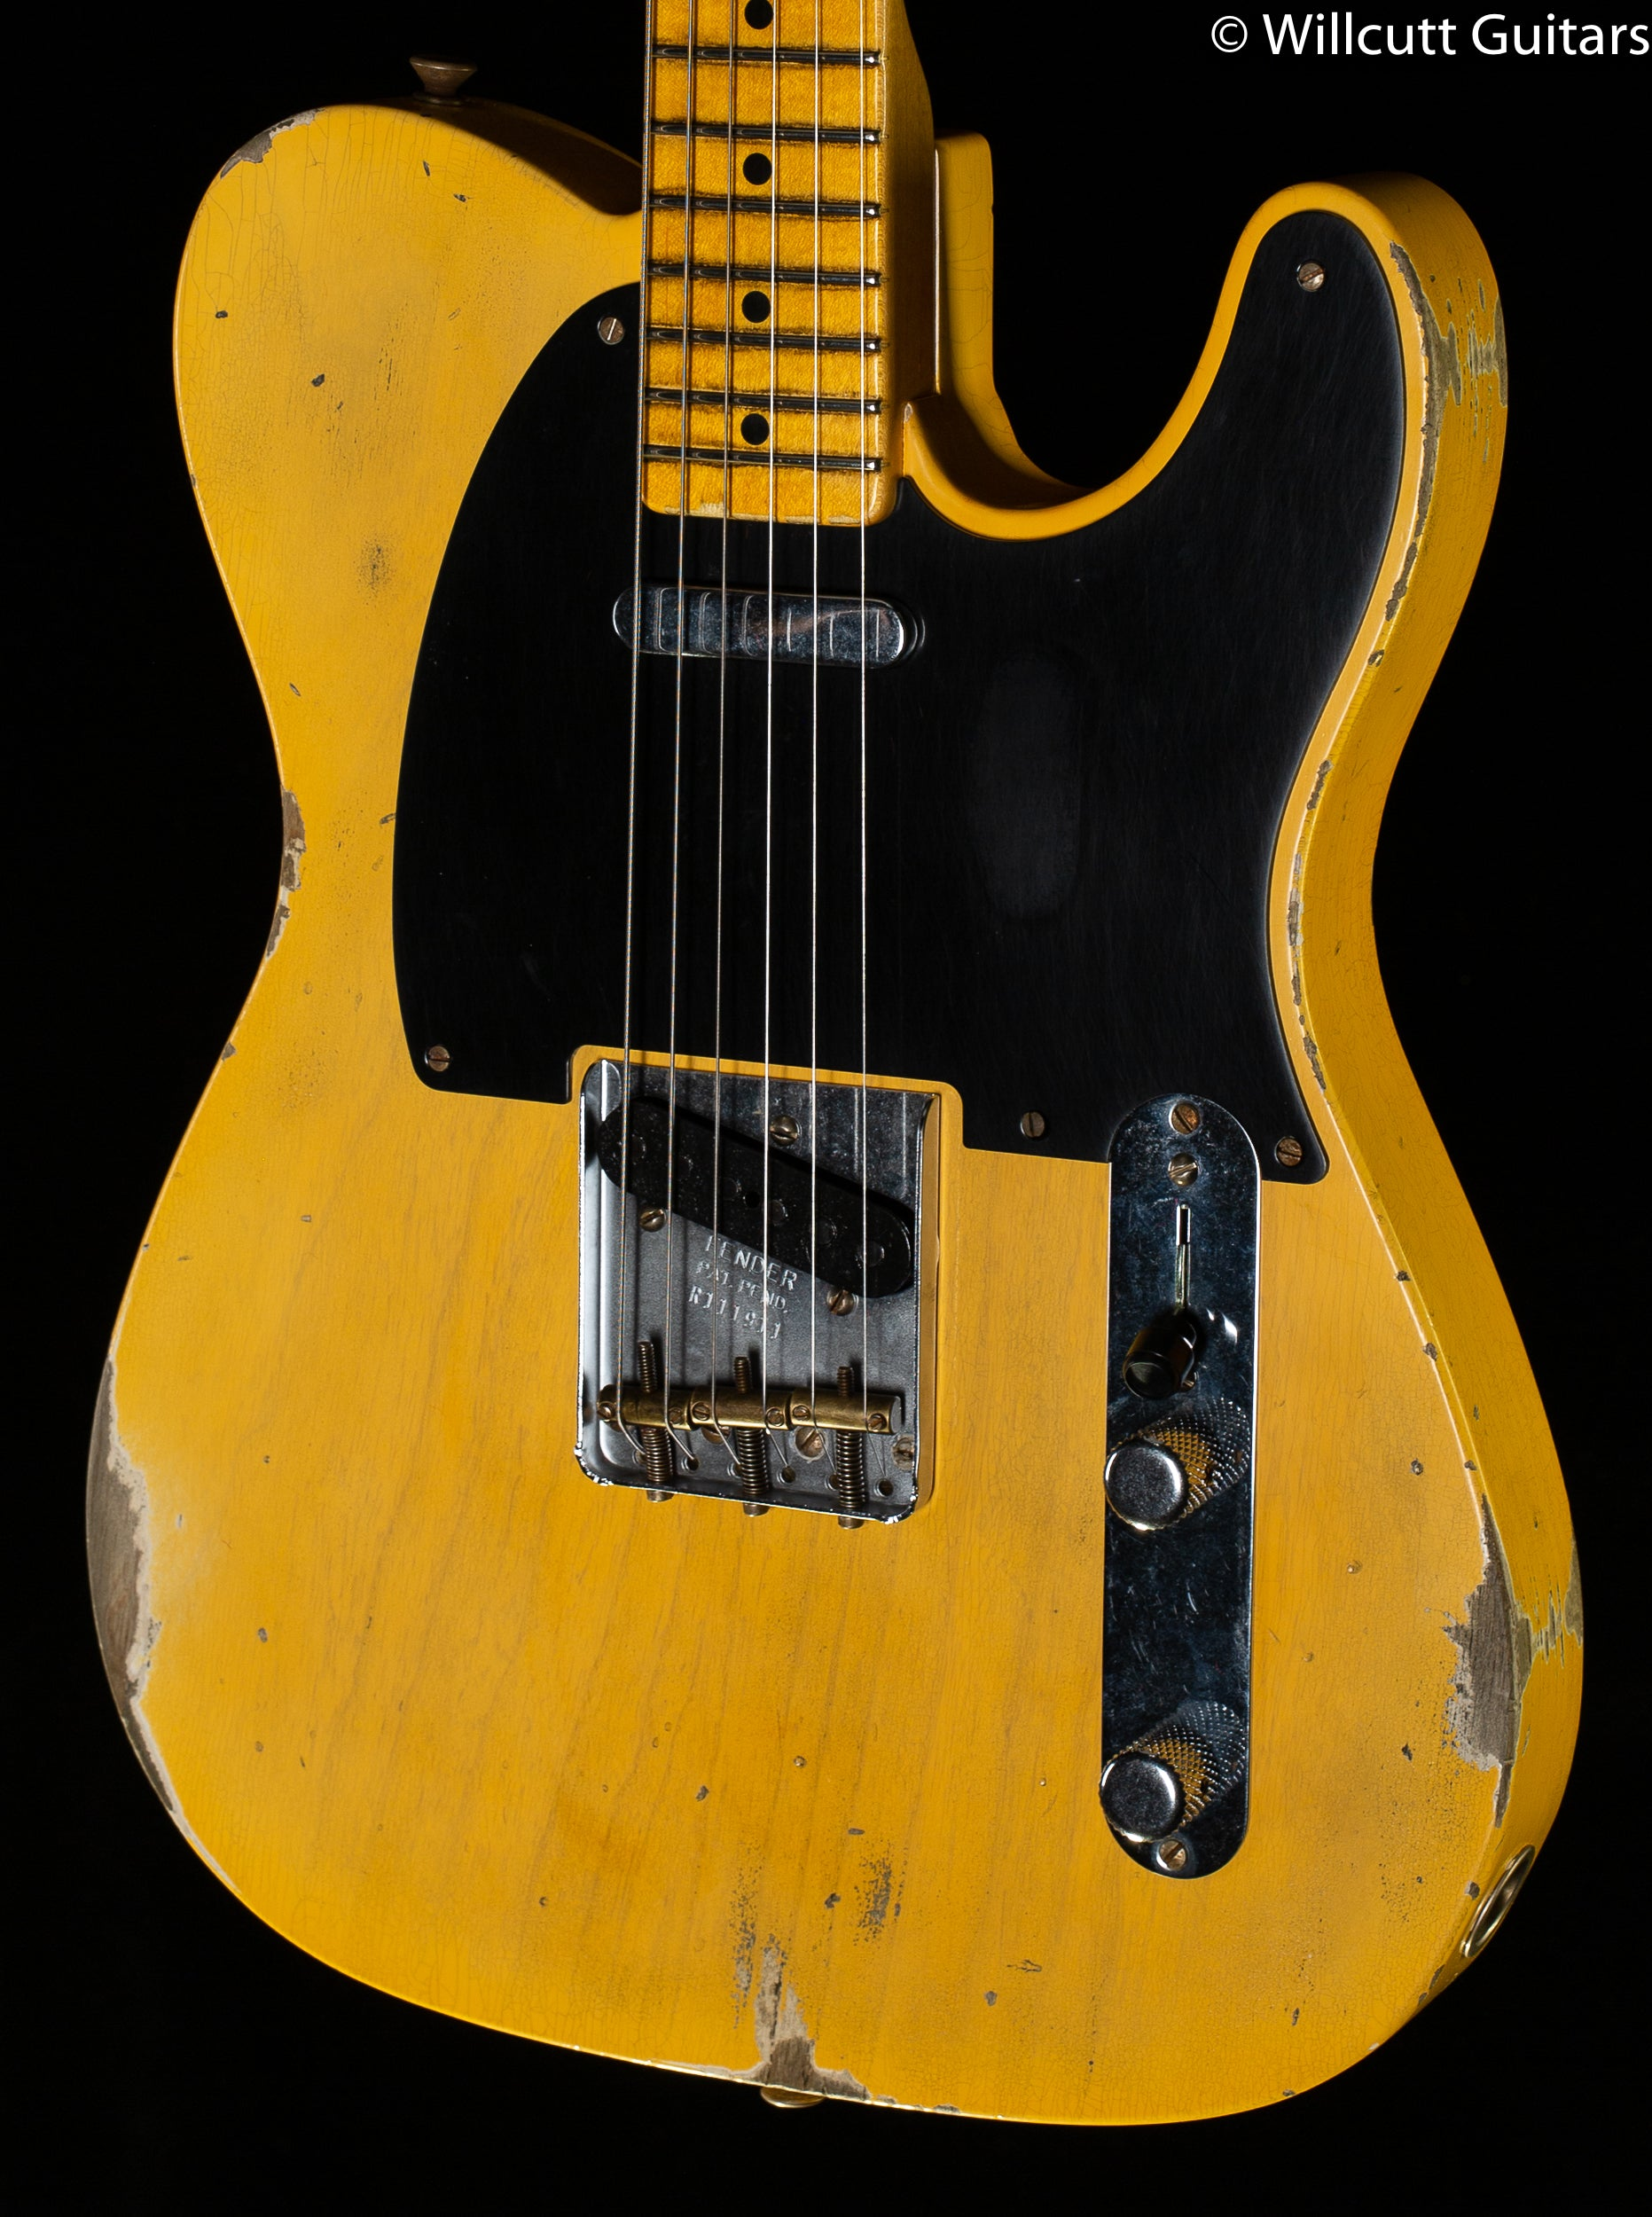 Fender Custom Shop LTD 70th Anniversary Broadcaster Relic Aged Nocaster Blonde